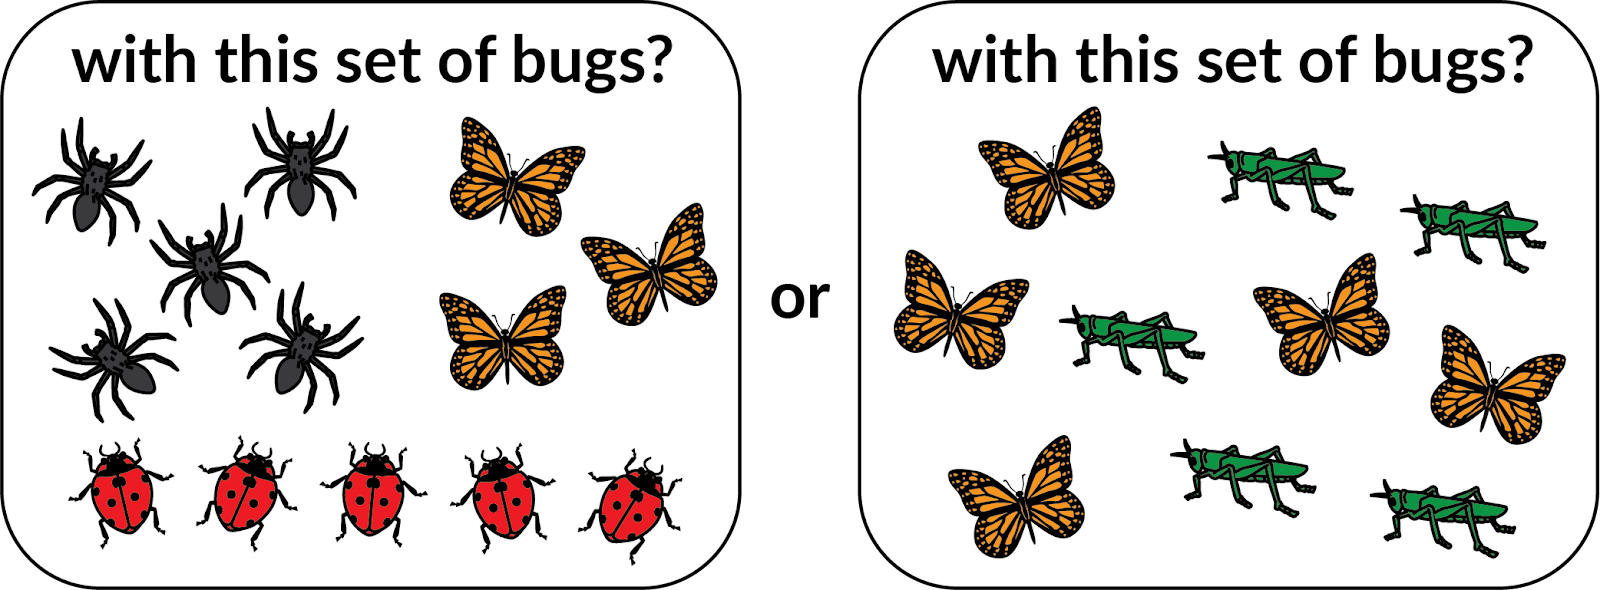 With this set of bugs? 5 black spiders. 3 orange butterflies. 5 red ladybugs. Or with this set of bugs? 5 orange butterflies and 5 green grasshoppers.